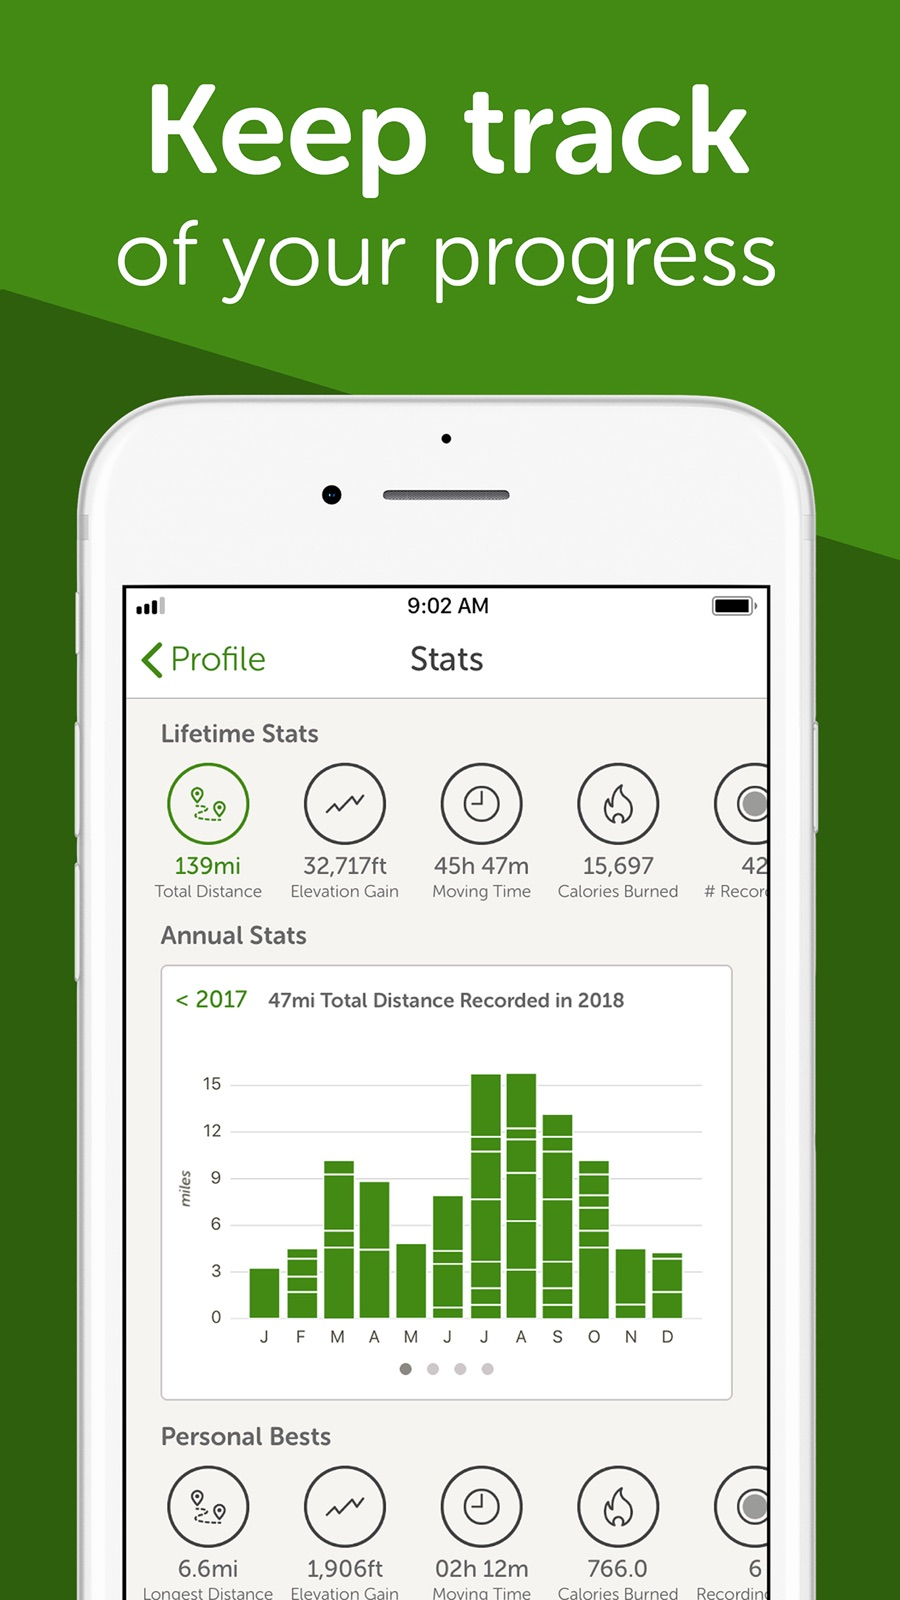 Example of Design for Health & Fitness App , App Store Screenshot by AllTrails